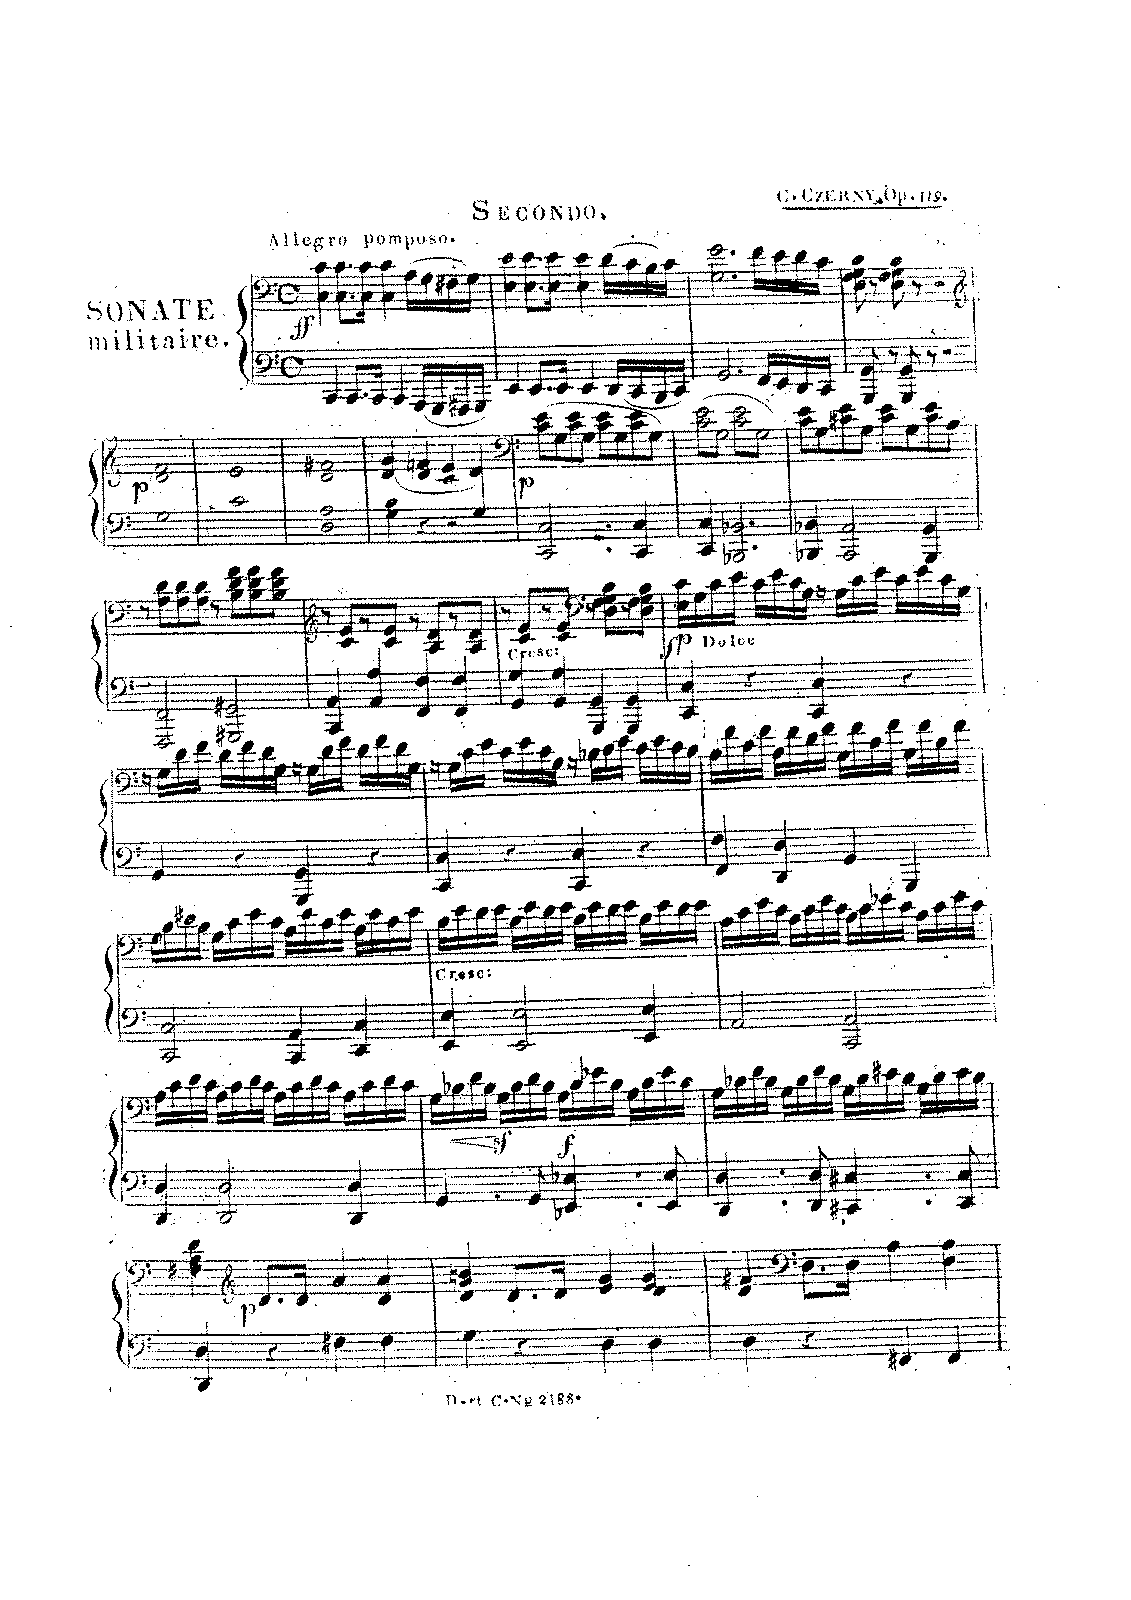 CZERNY Sonata militaire for 4 hands Op 119.pdf